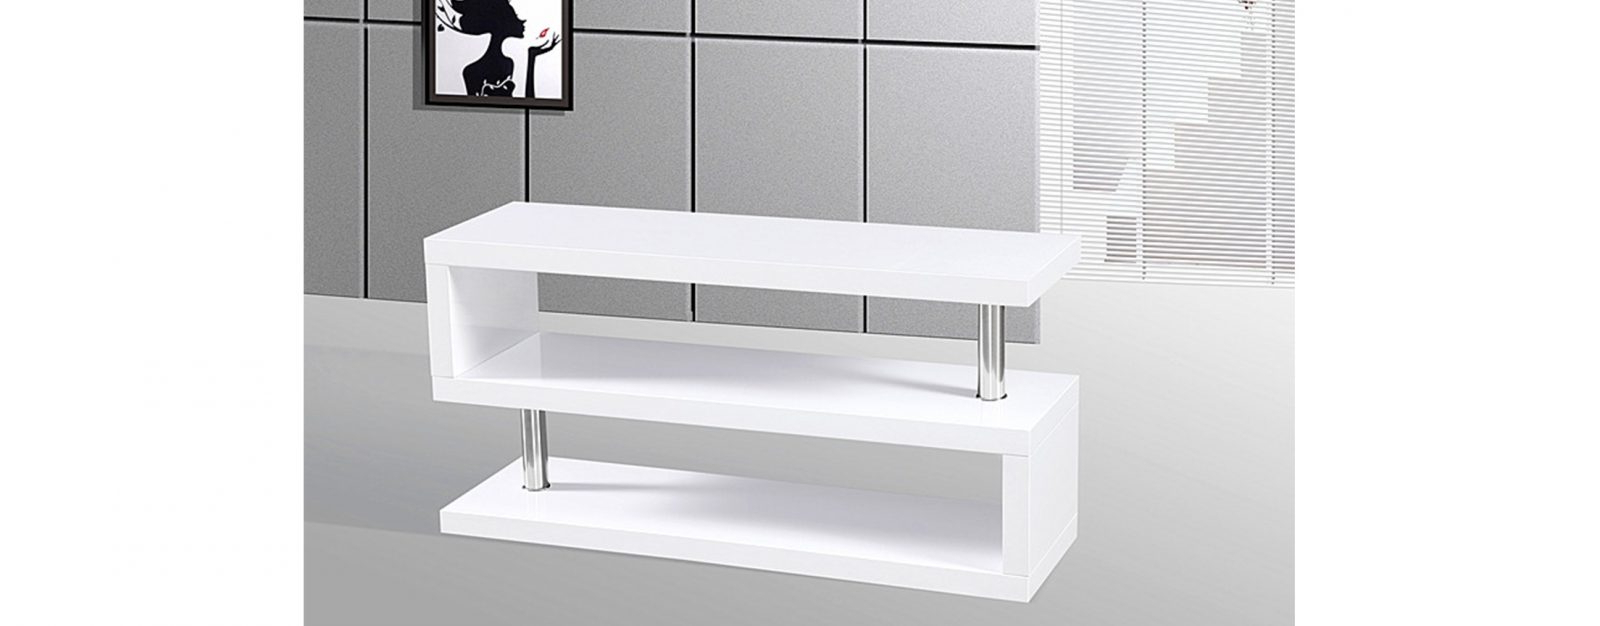 Allans Furniture Warehouse Intended For White High Gloss Tv Stands (View 5 of 20)